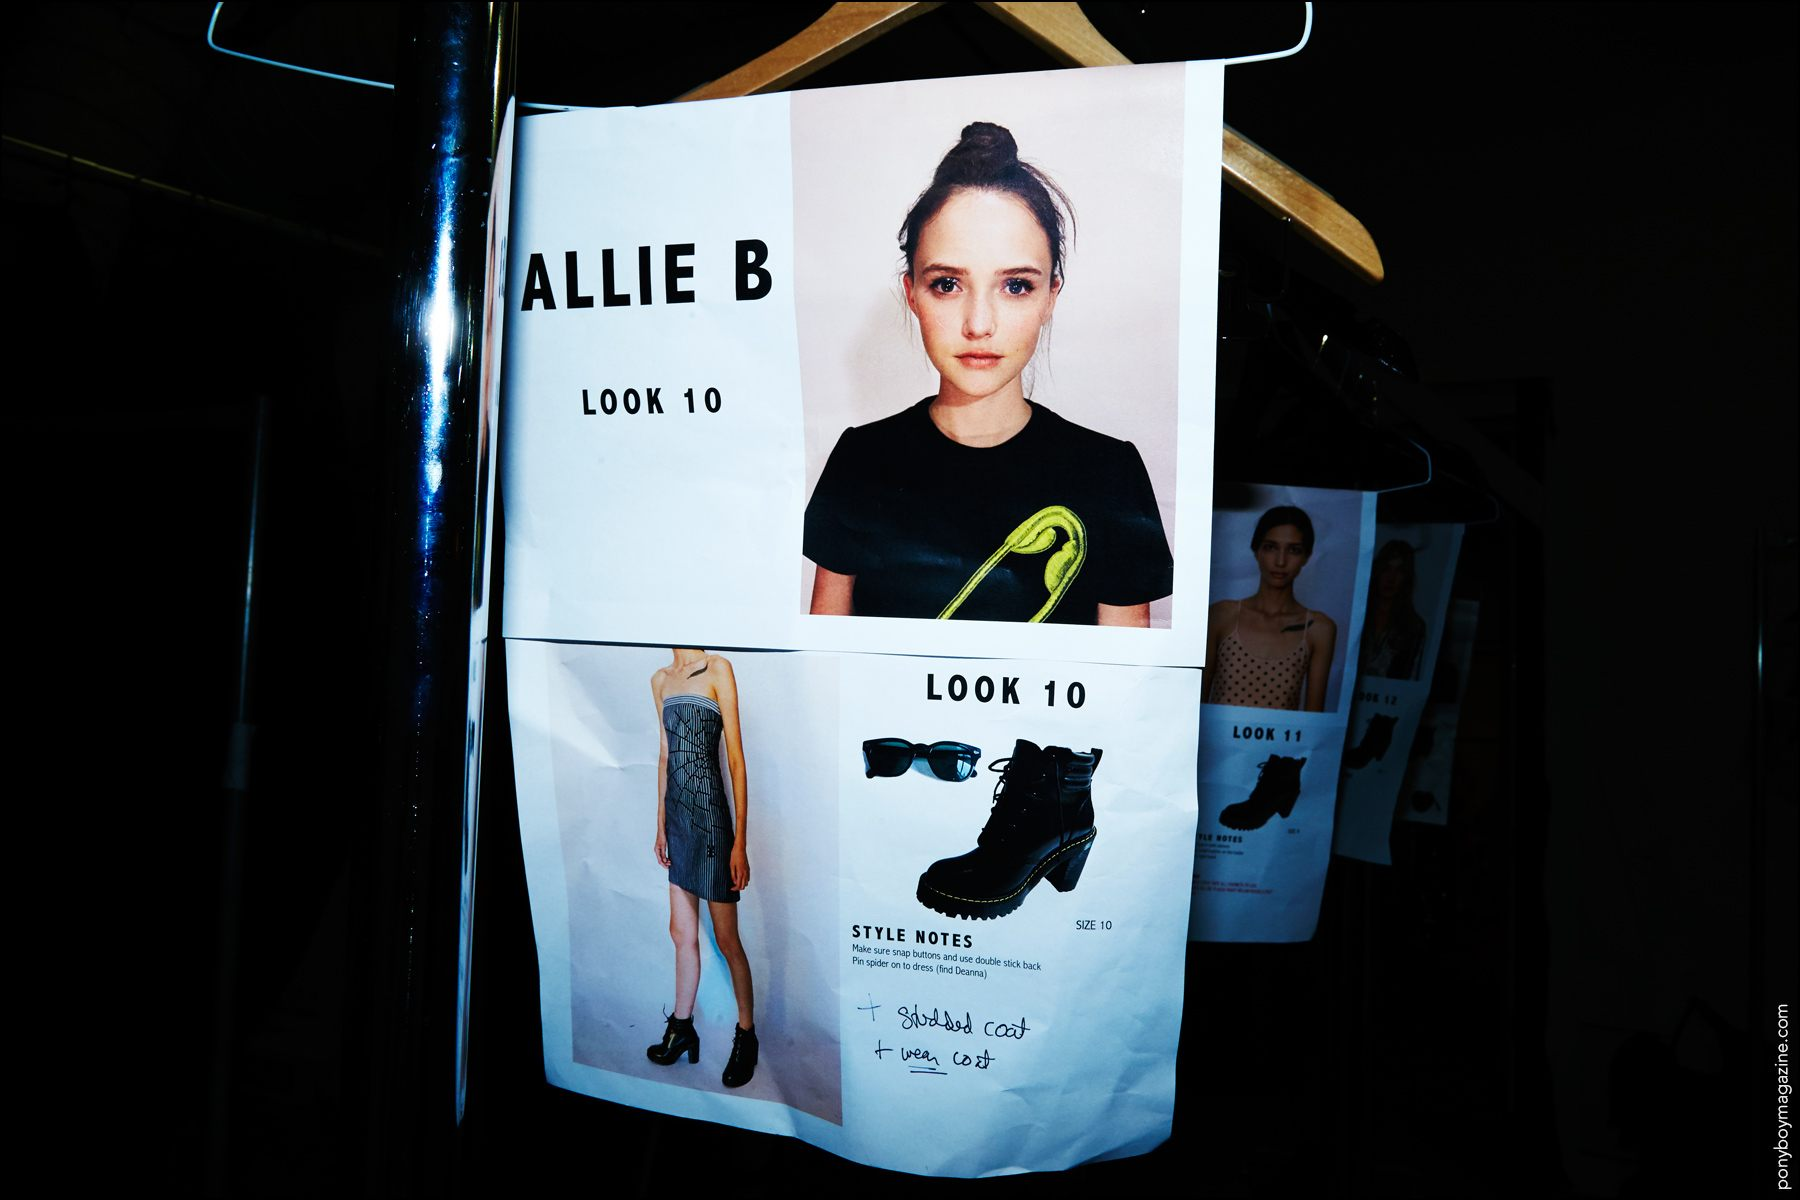 Allie Barrett's model dressing card photographed backstage at the Georgine Spring/Summer 2017 show. Photography by Alexander Thompson for Ponyboy magazine in New York.